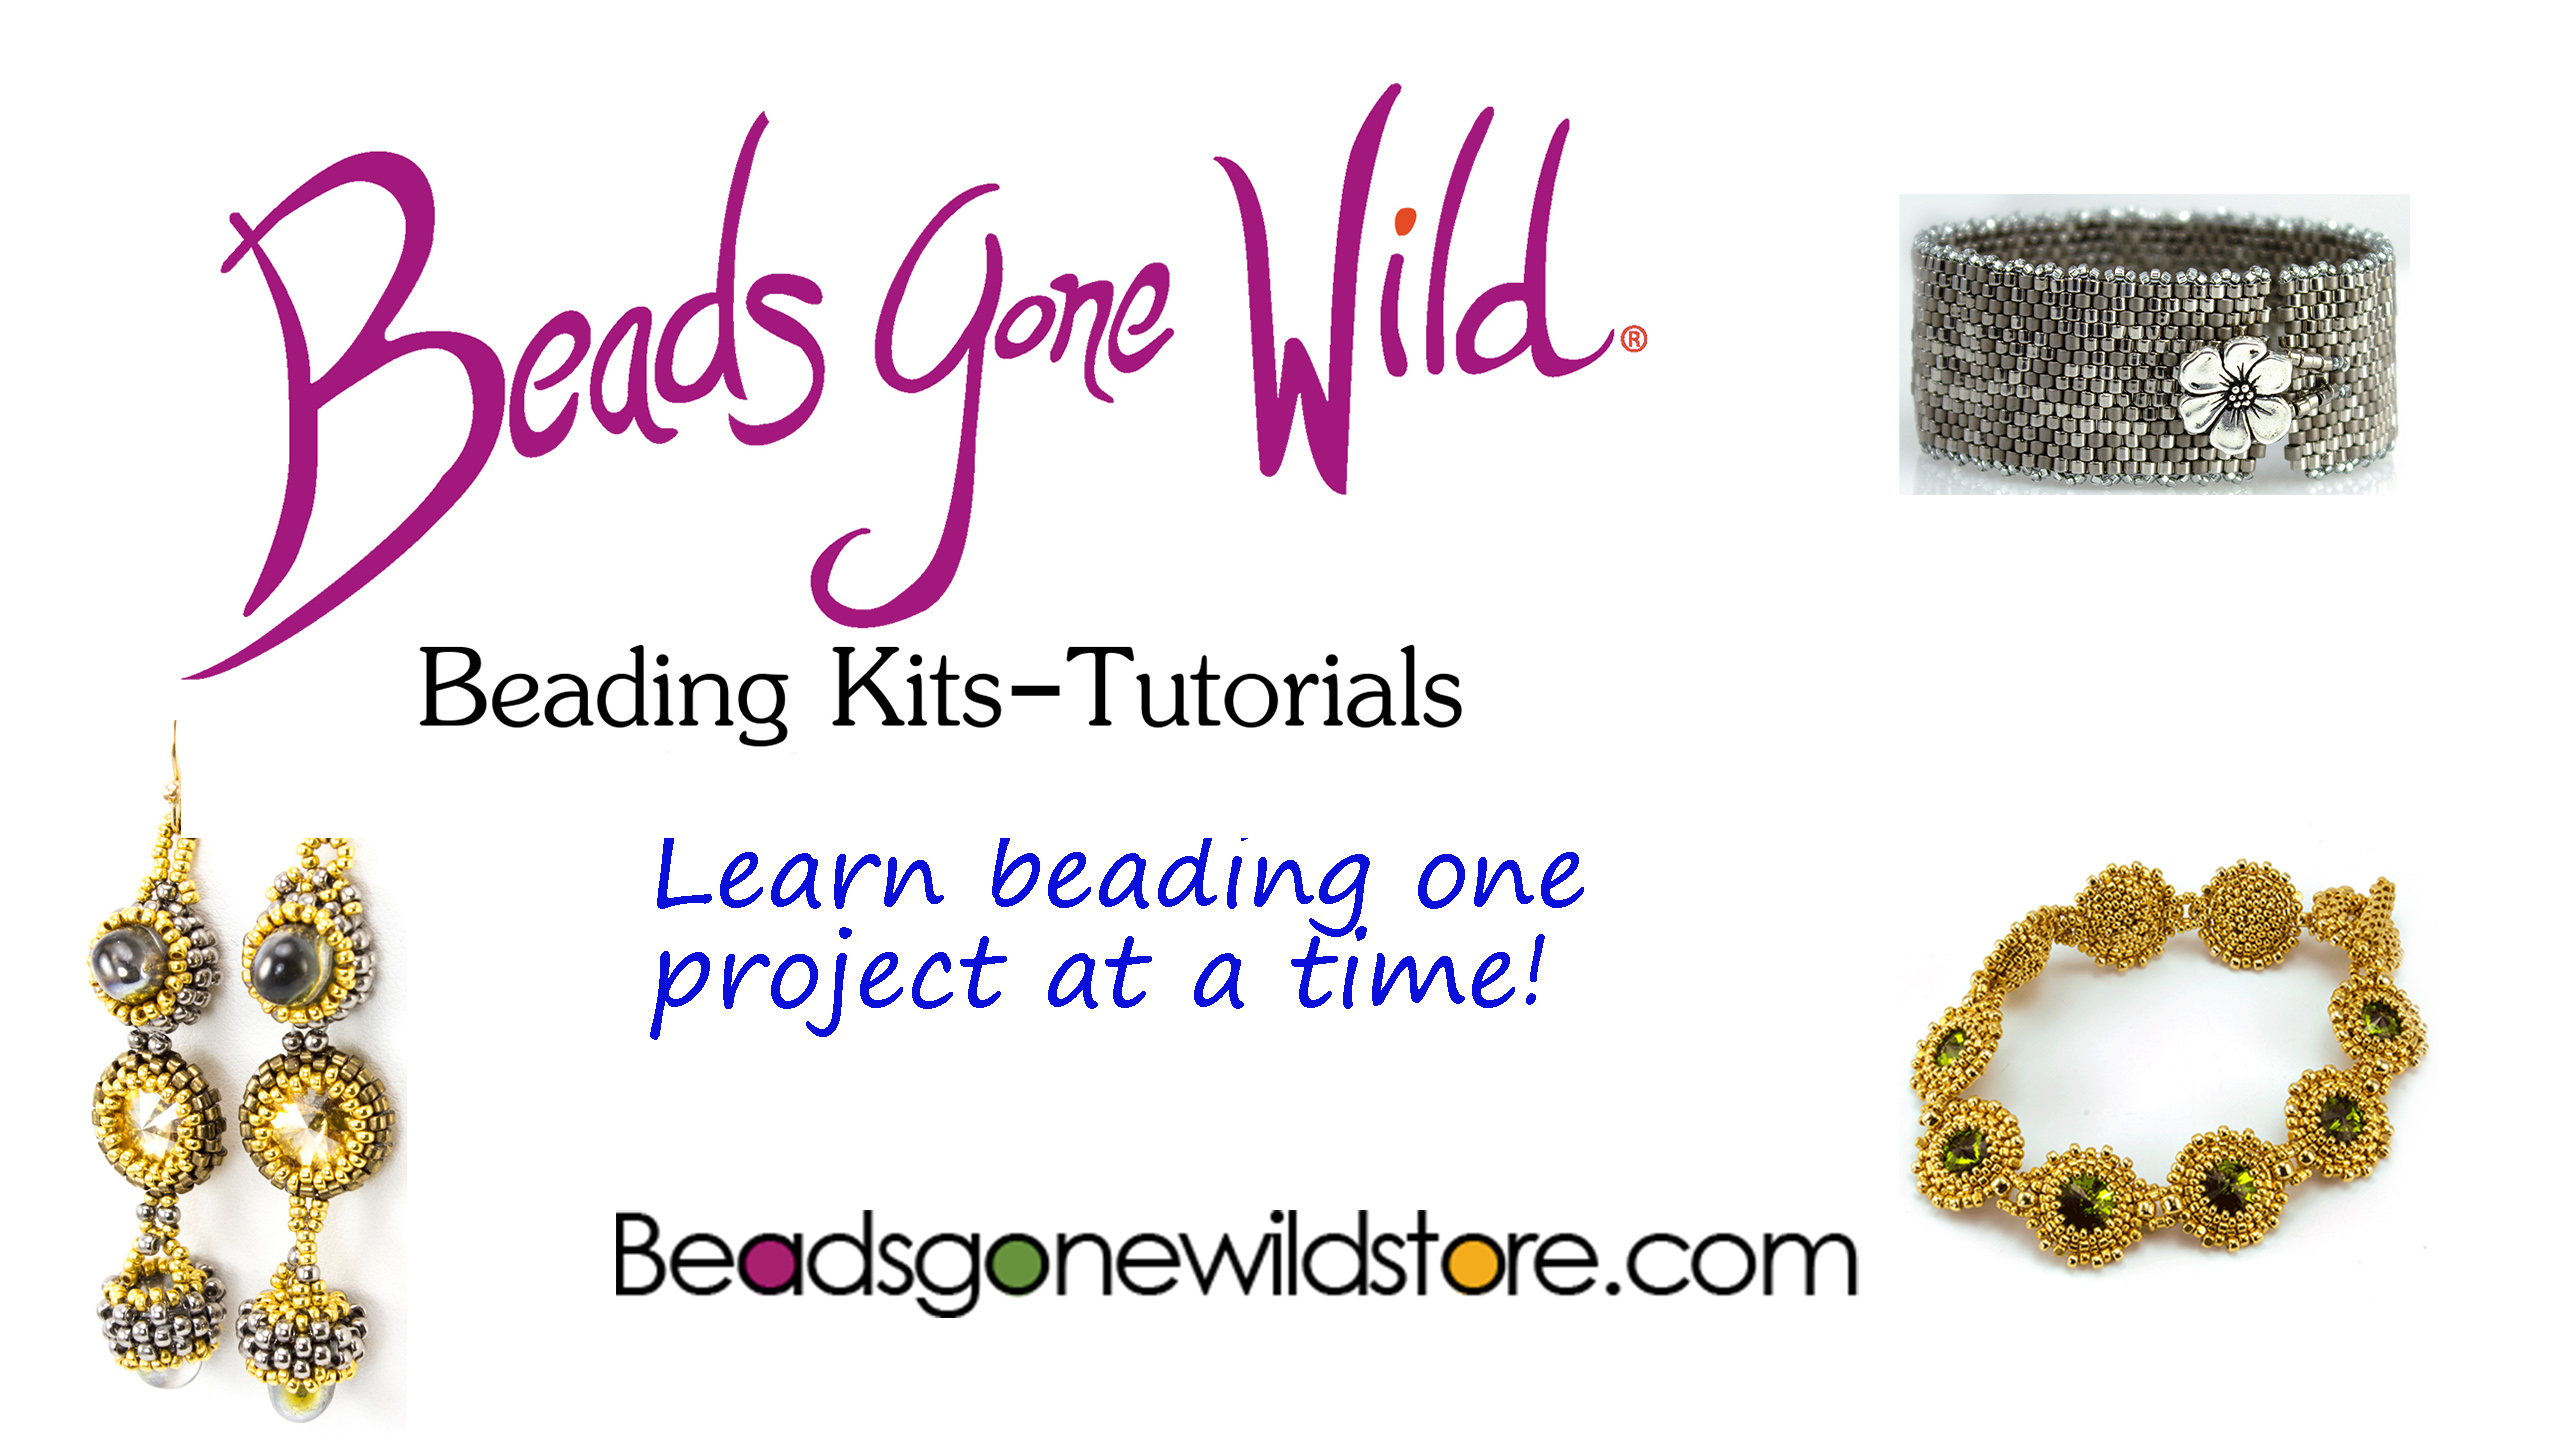 Beads Gone Wild, Beading Kits, Tutorials. Learn Beading one project at a time.